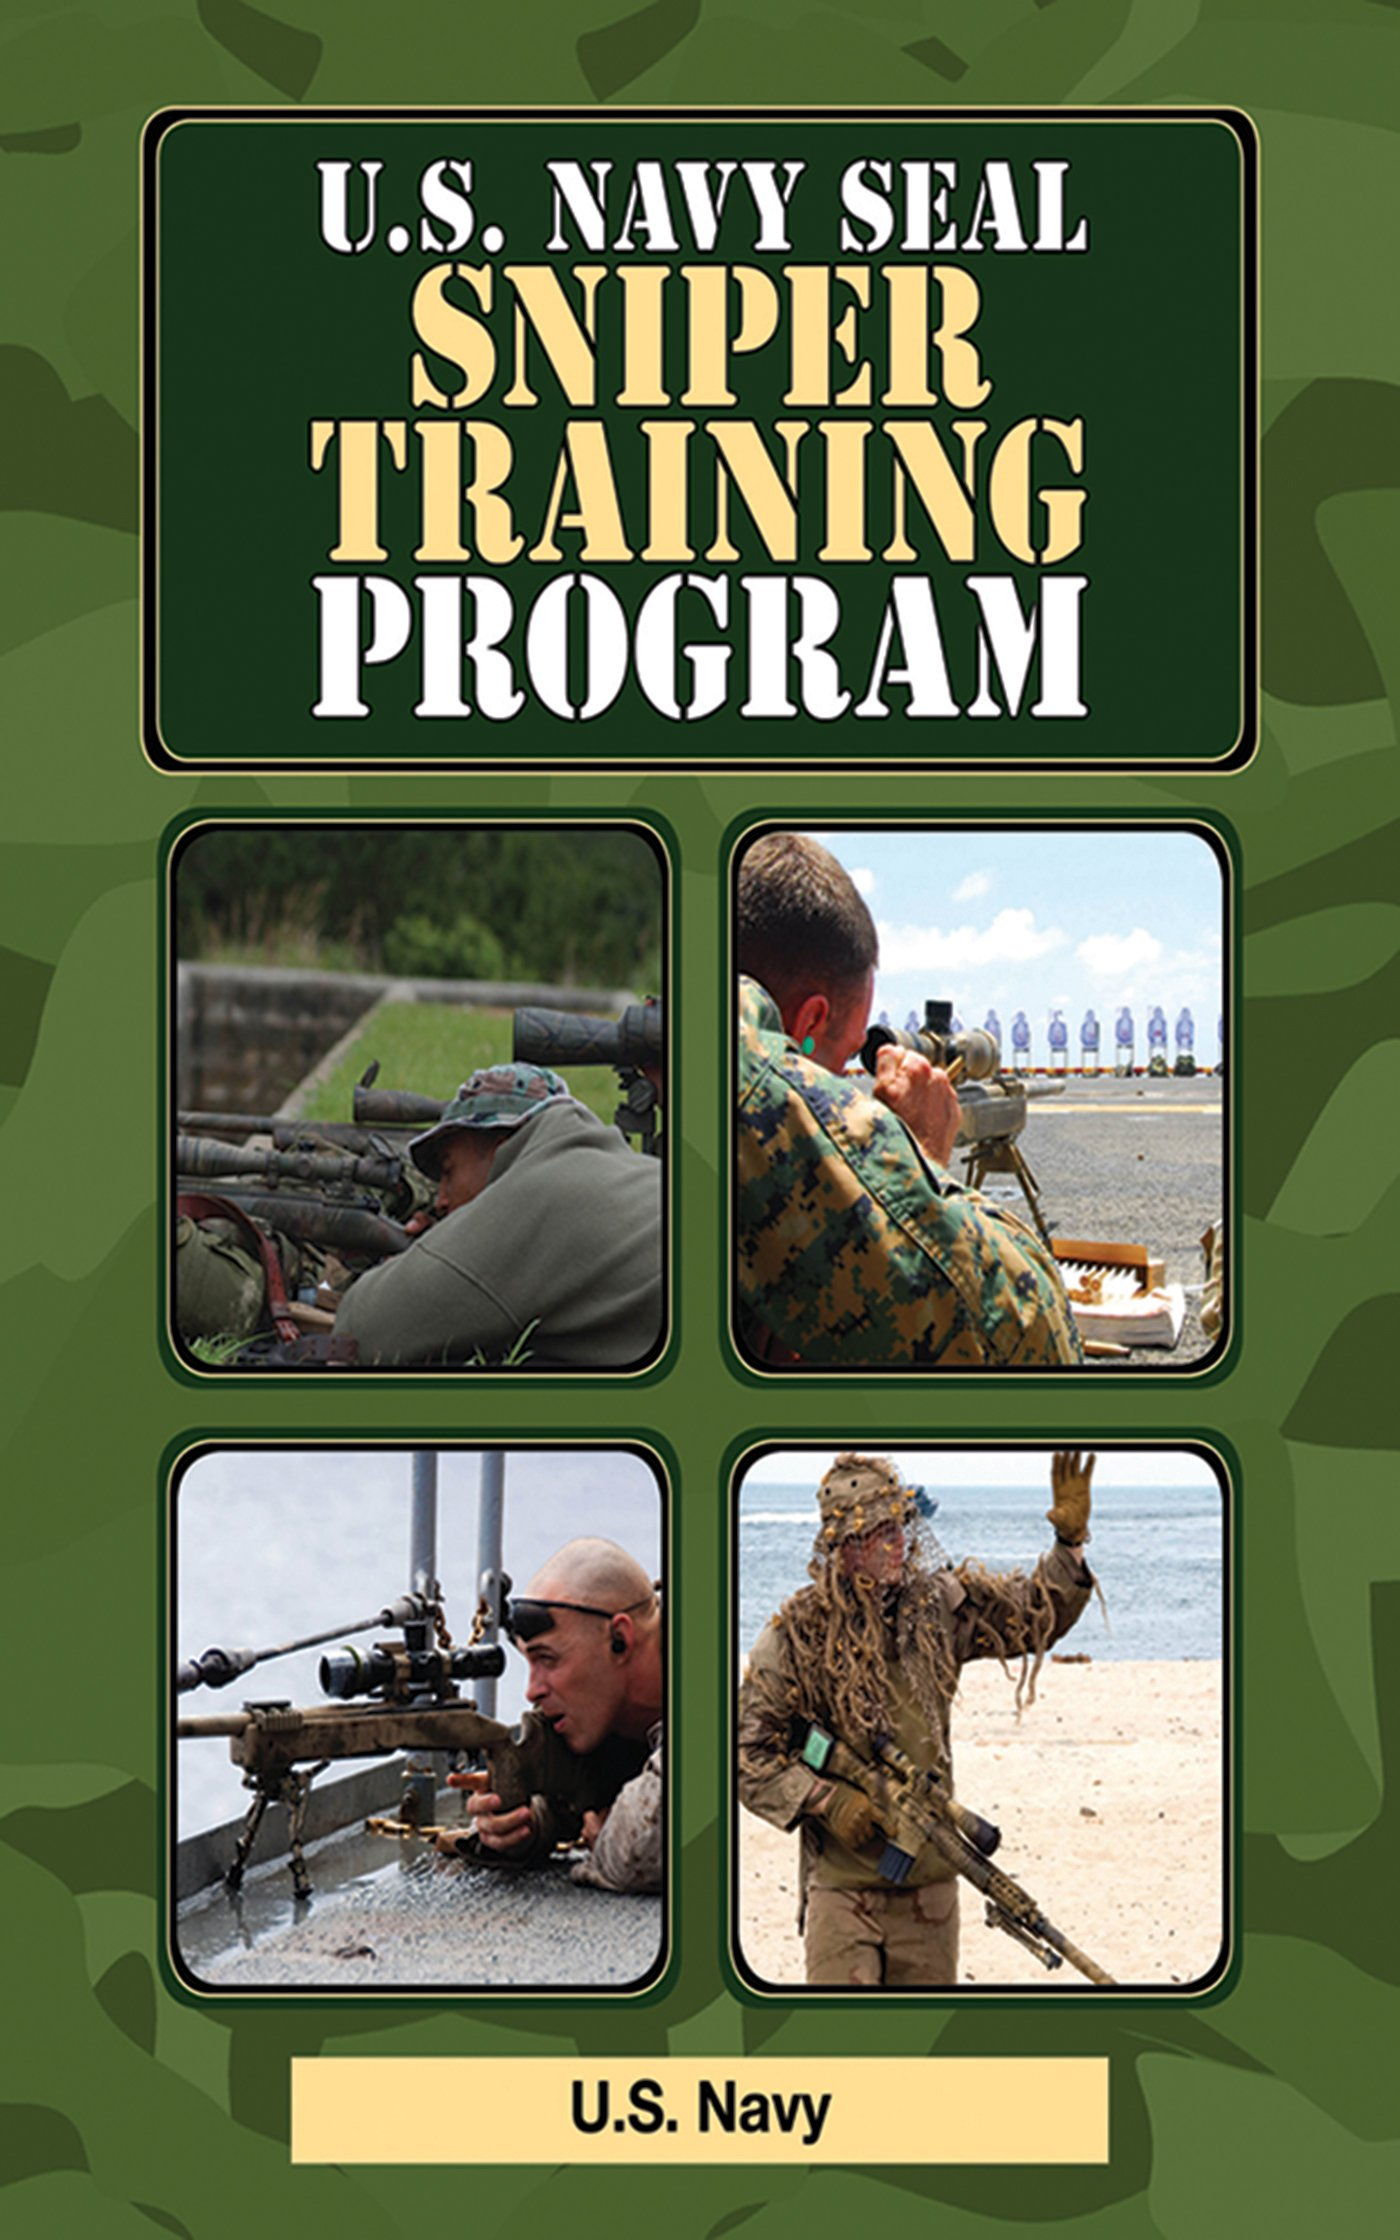 U.S. Navy SEAL Sniper Training Program (US Army Survival): U.S. Navy:  9781616082239: Amazon.com: Books